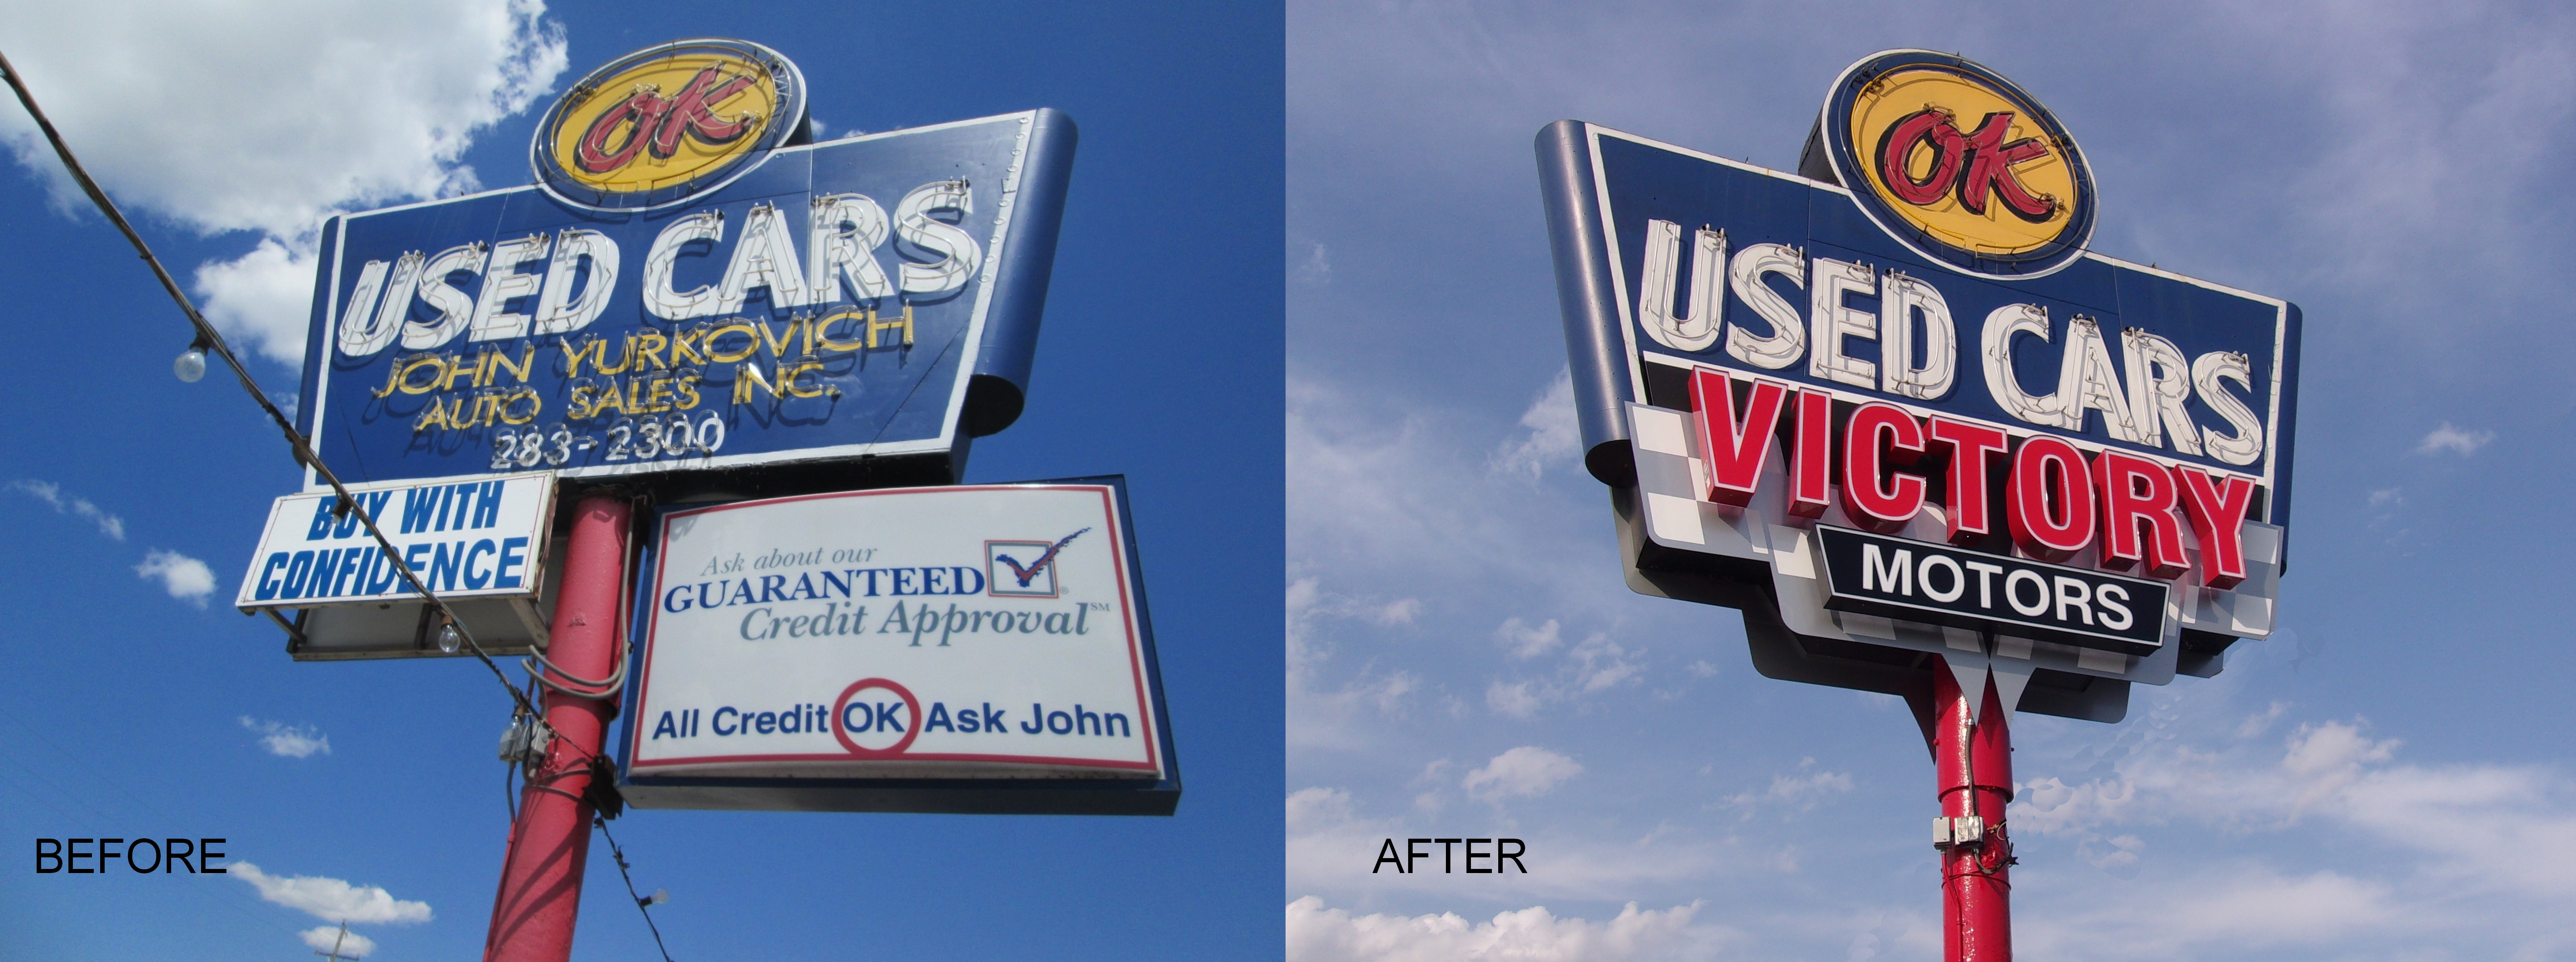 Victory Motors Before and After Wyandotte